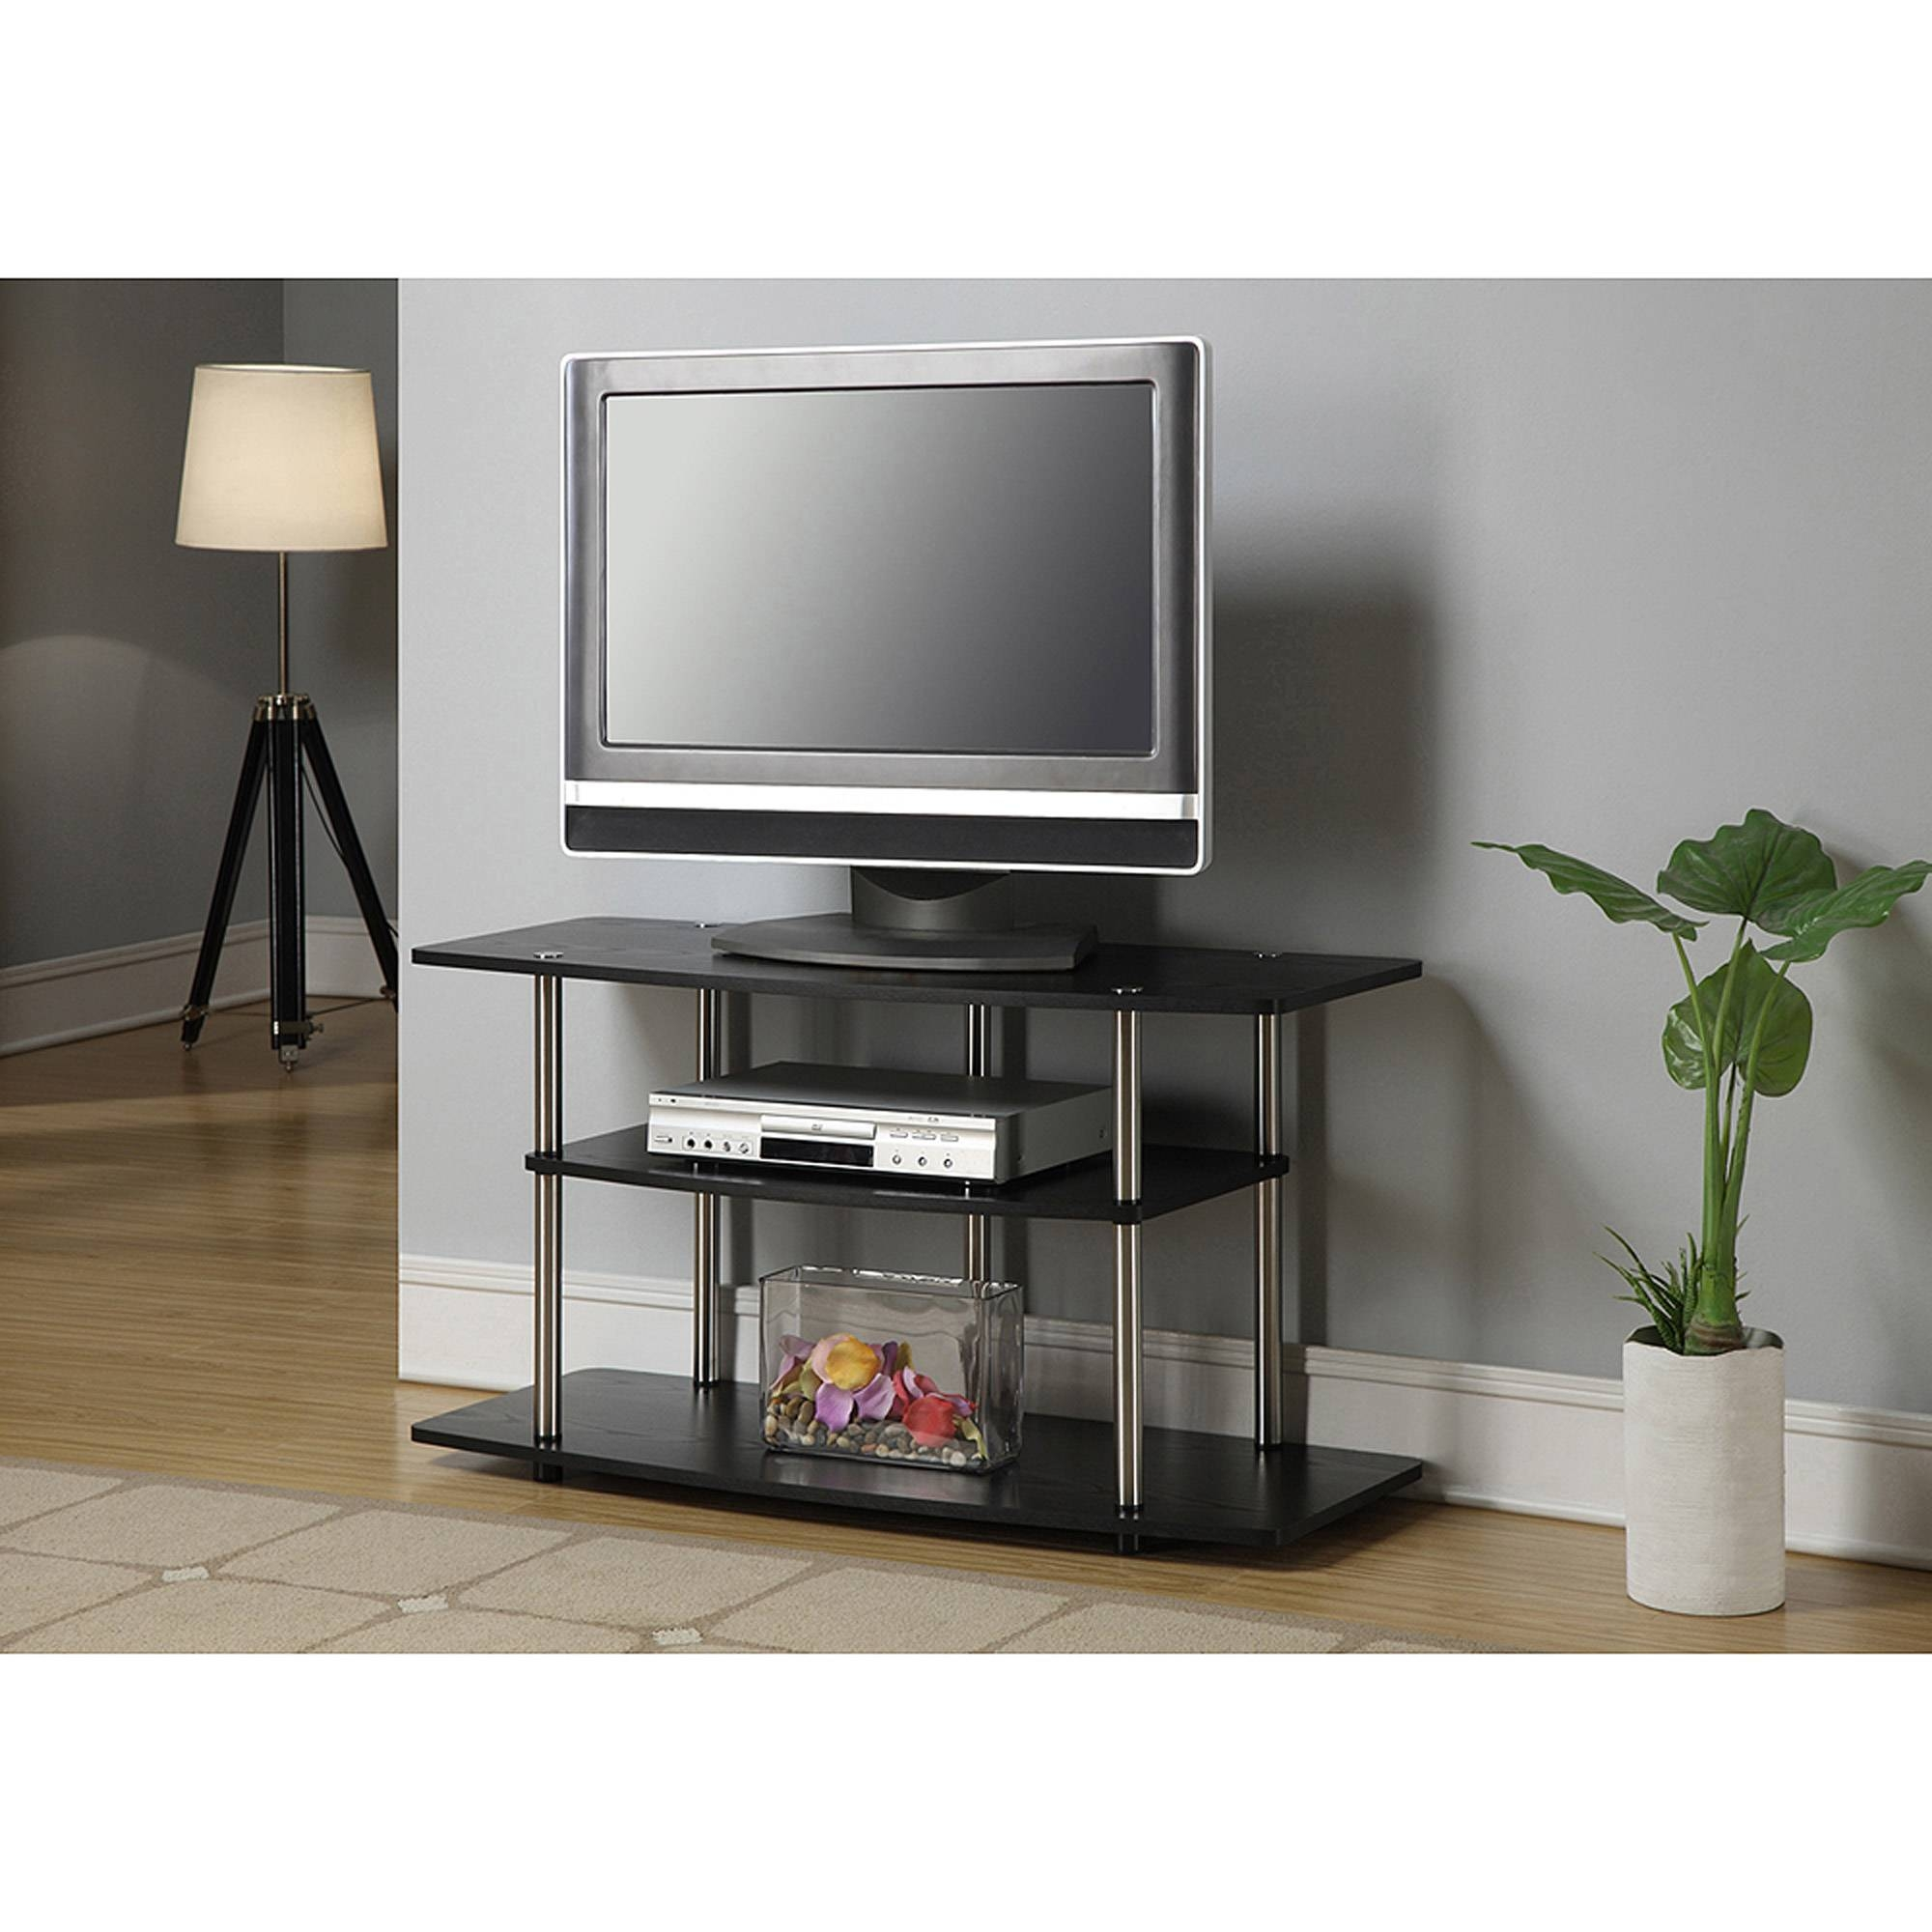 "Walker Edison Black Tv Stand For Tvs Up To 48"" - Walmart inside Tv Stands For Large Tvs (Image 14 of 15)"